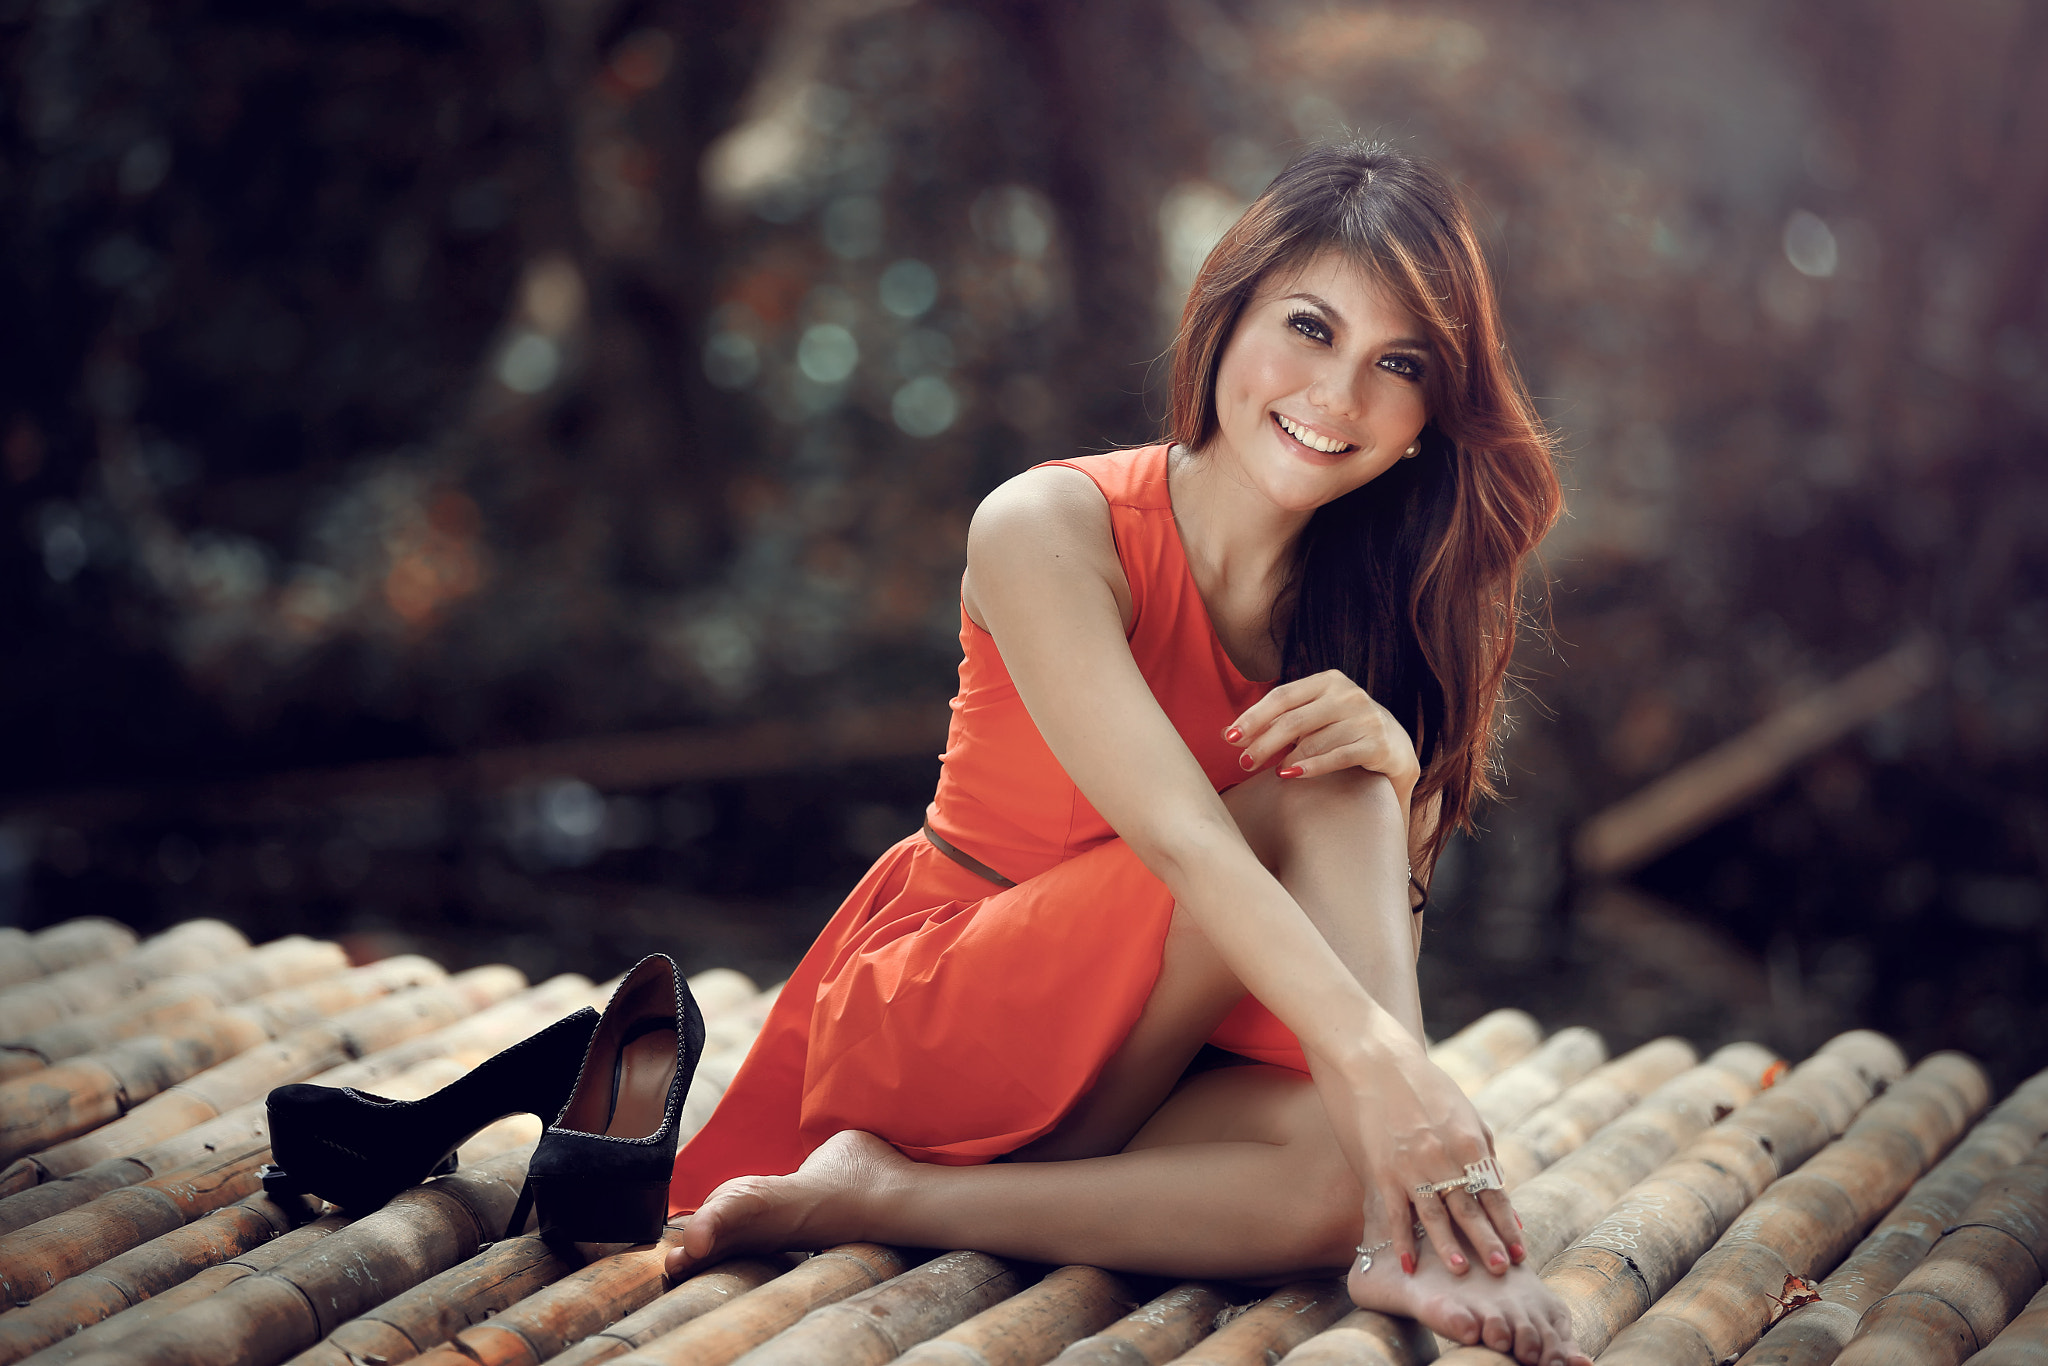 Photograph Ega 4 by Ivan Lee on 500px